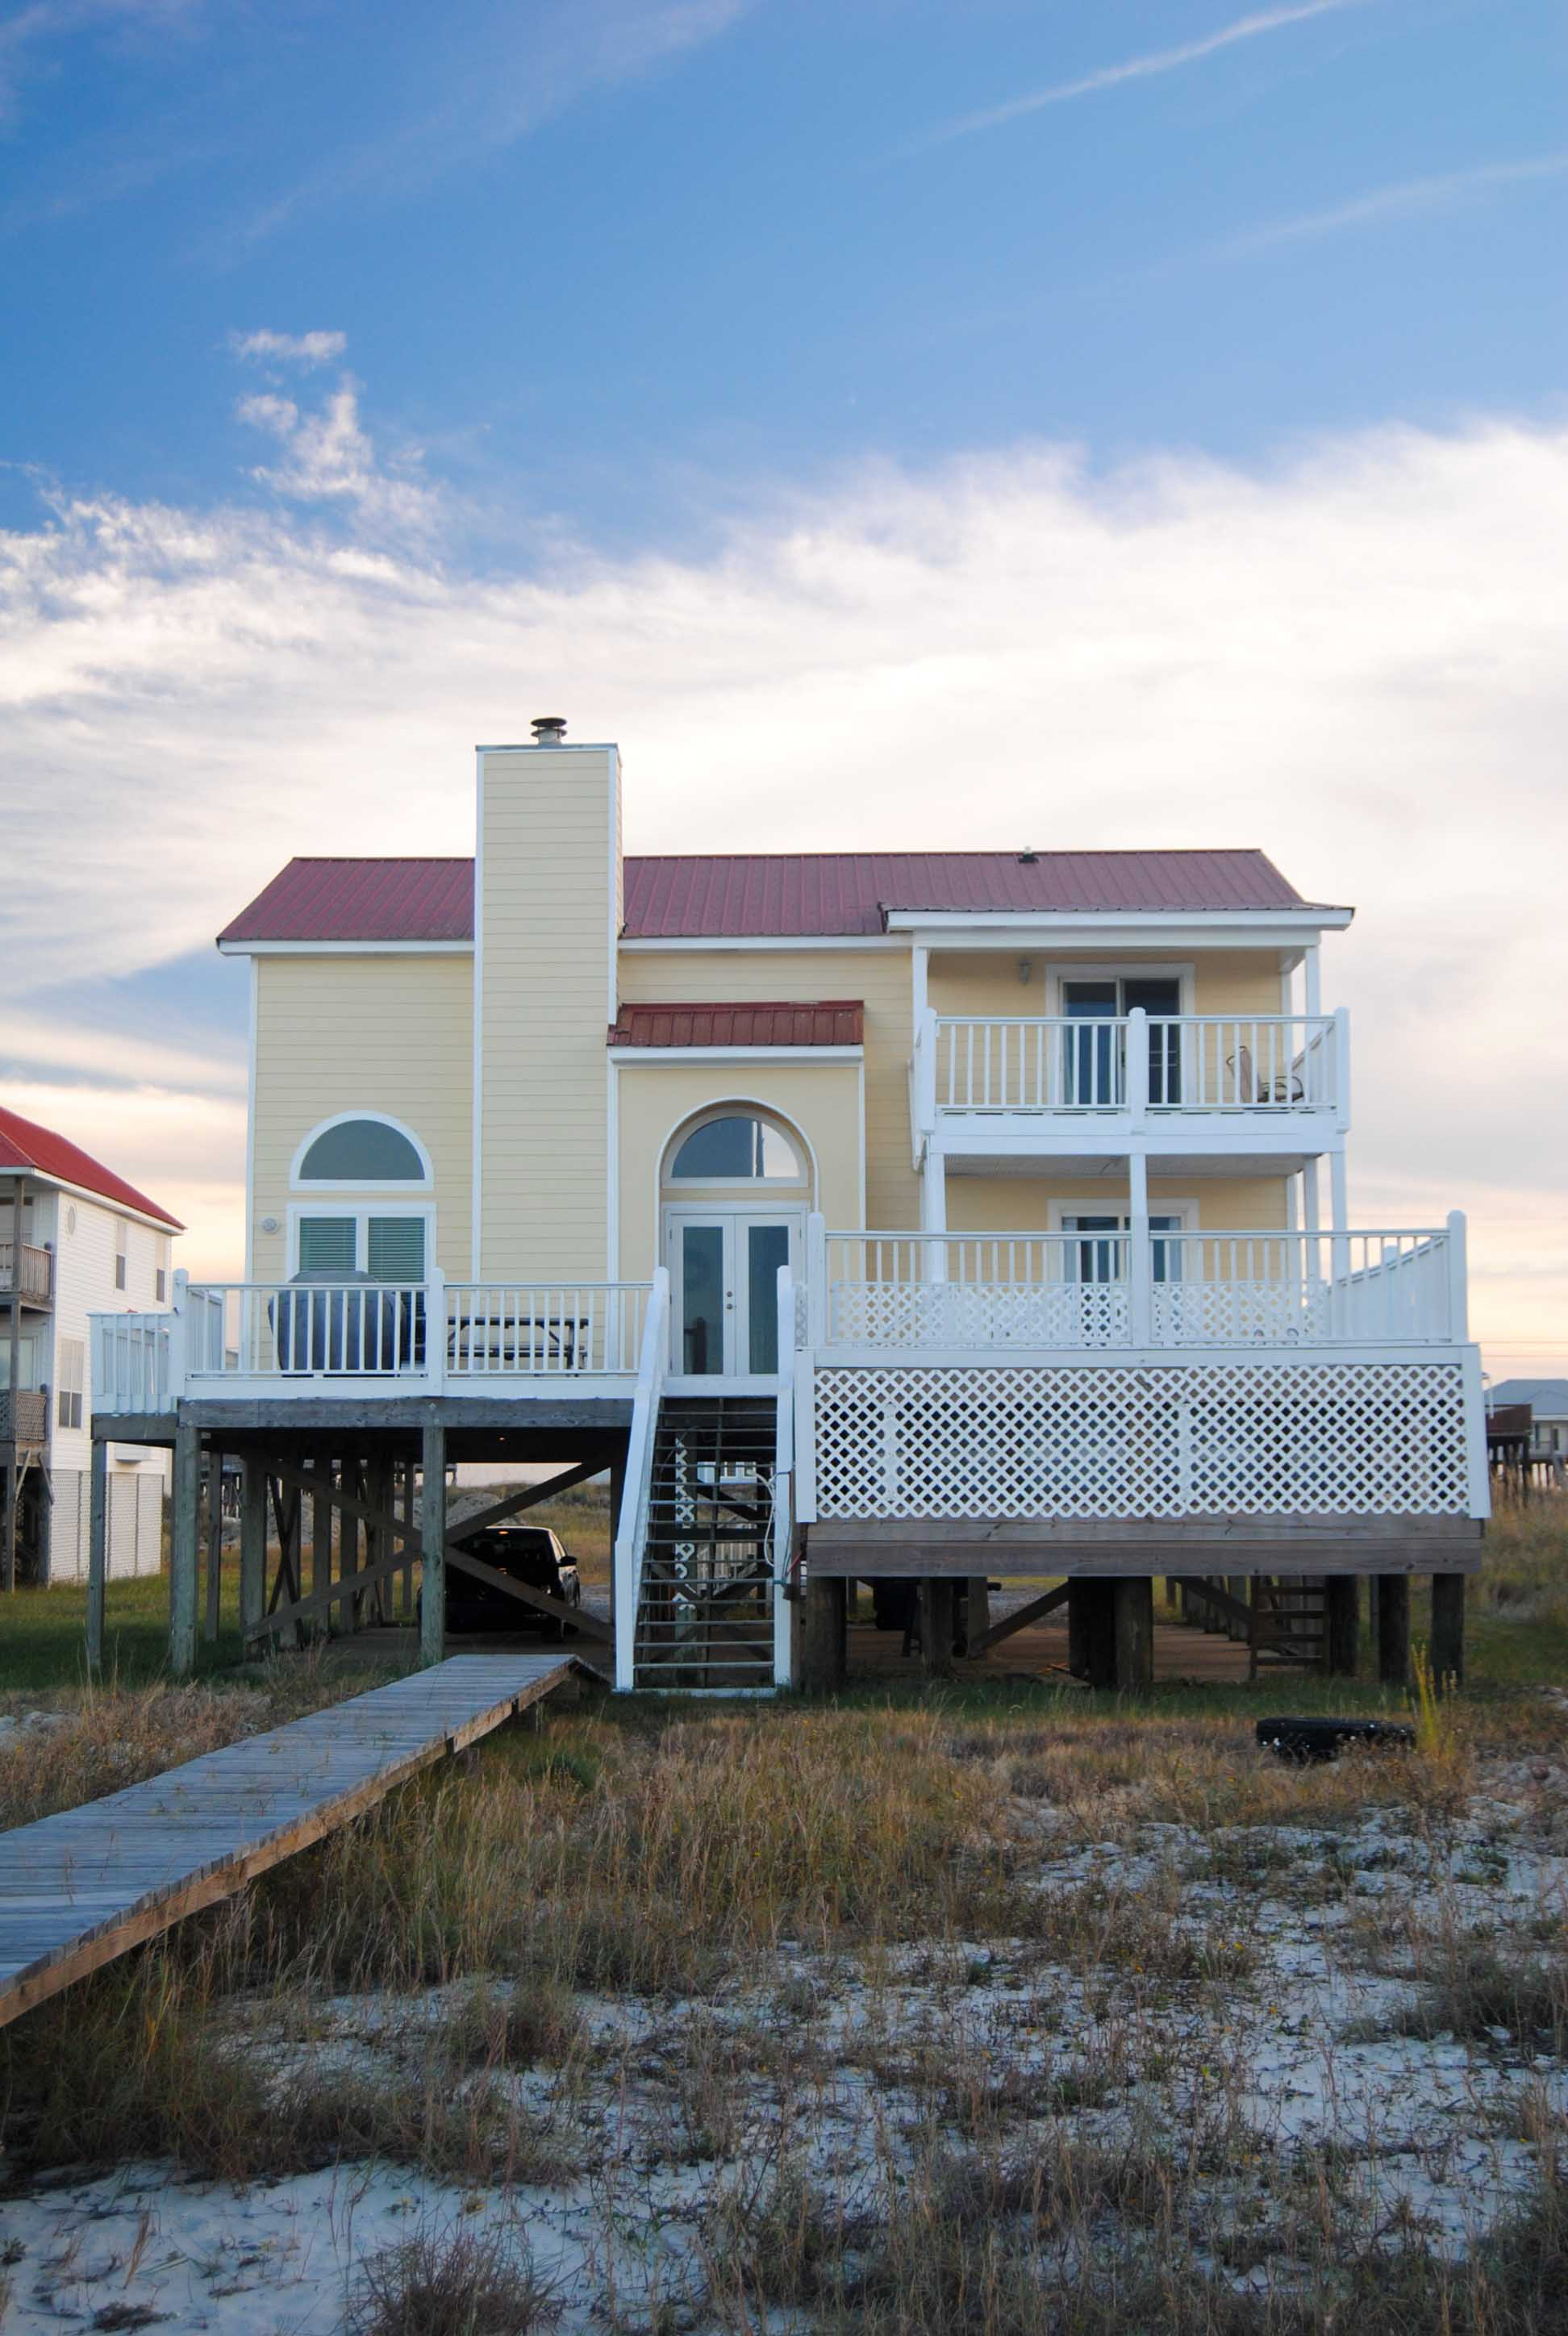 dauphin island rentals bayfront home with pool. Black Bedroom Furniture Sets. Home Design Ideas